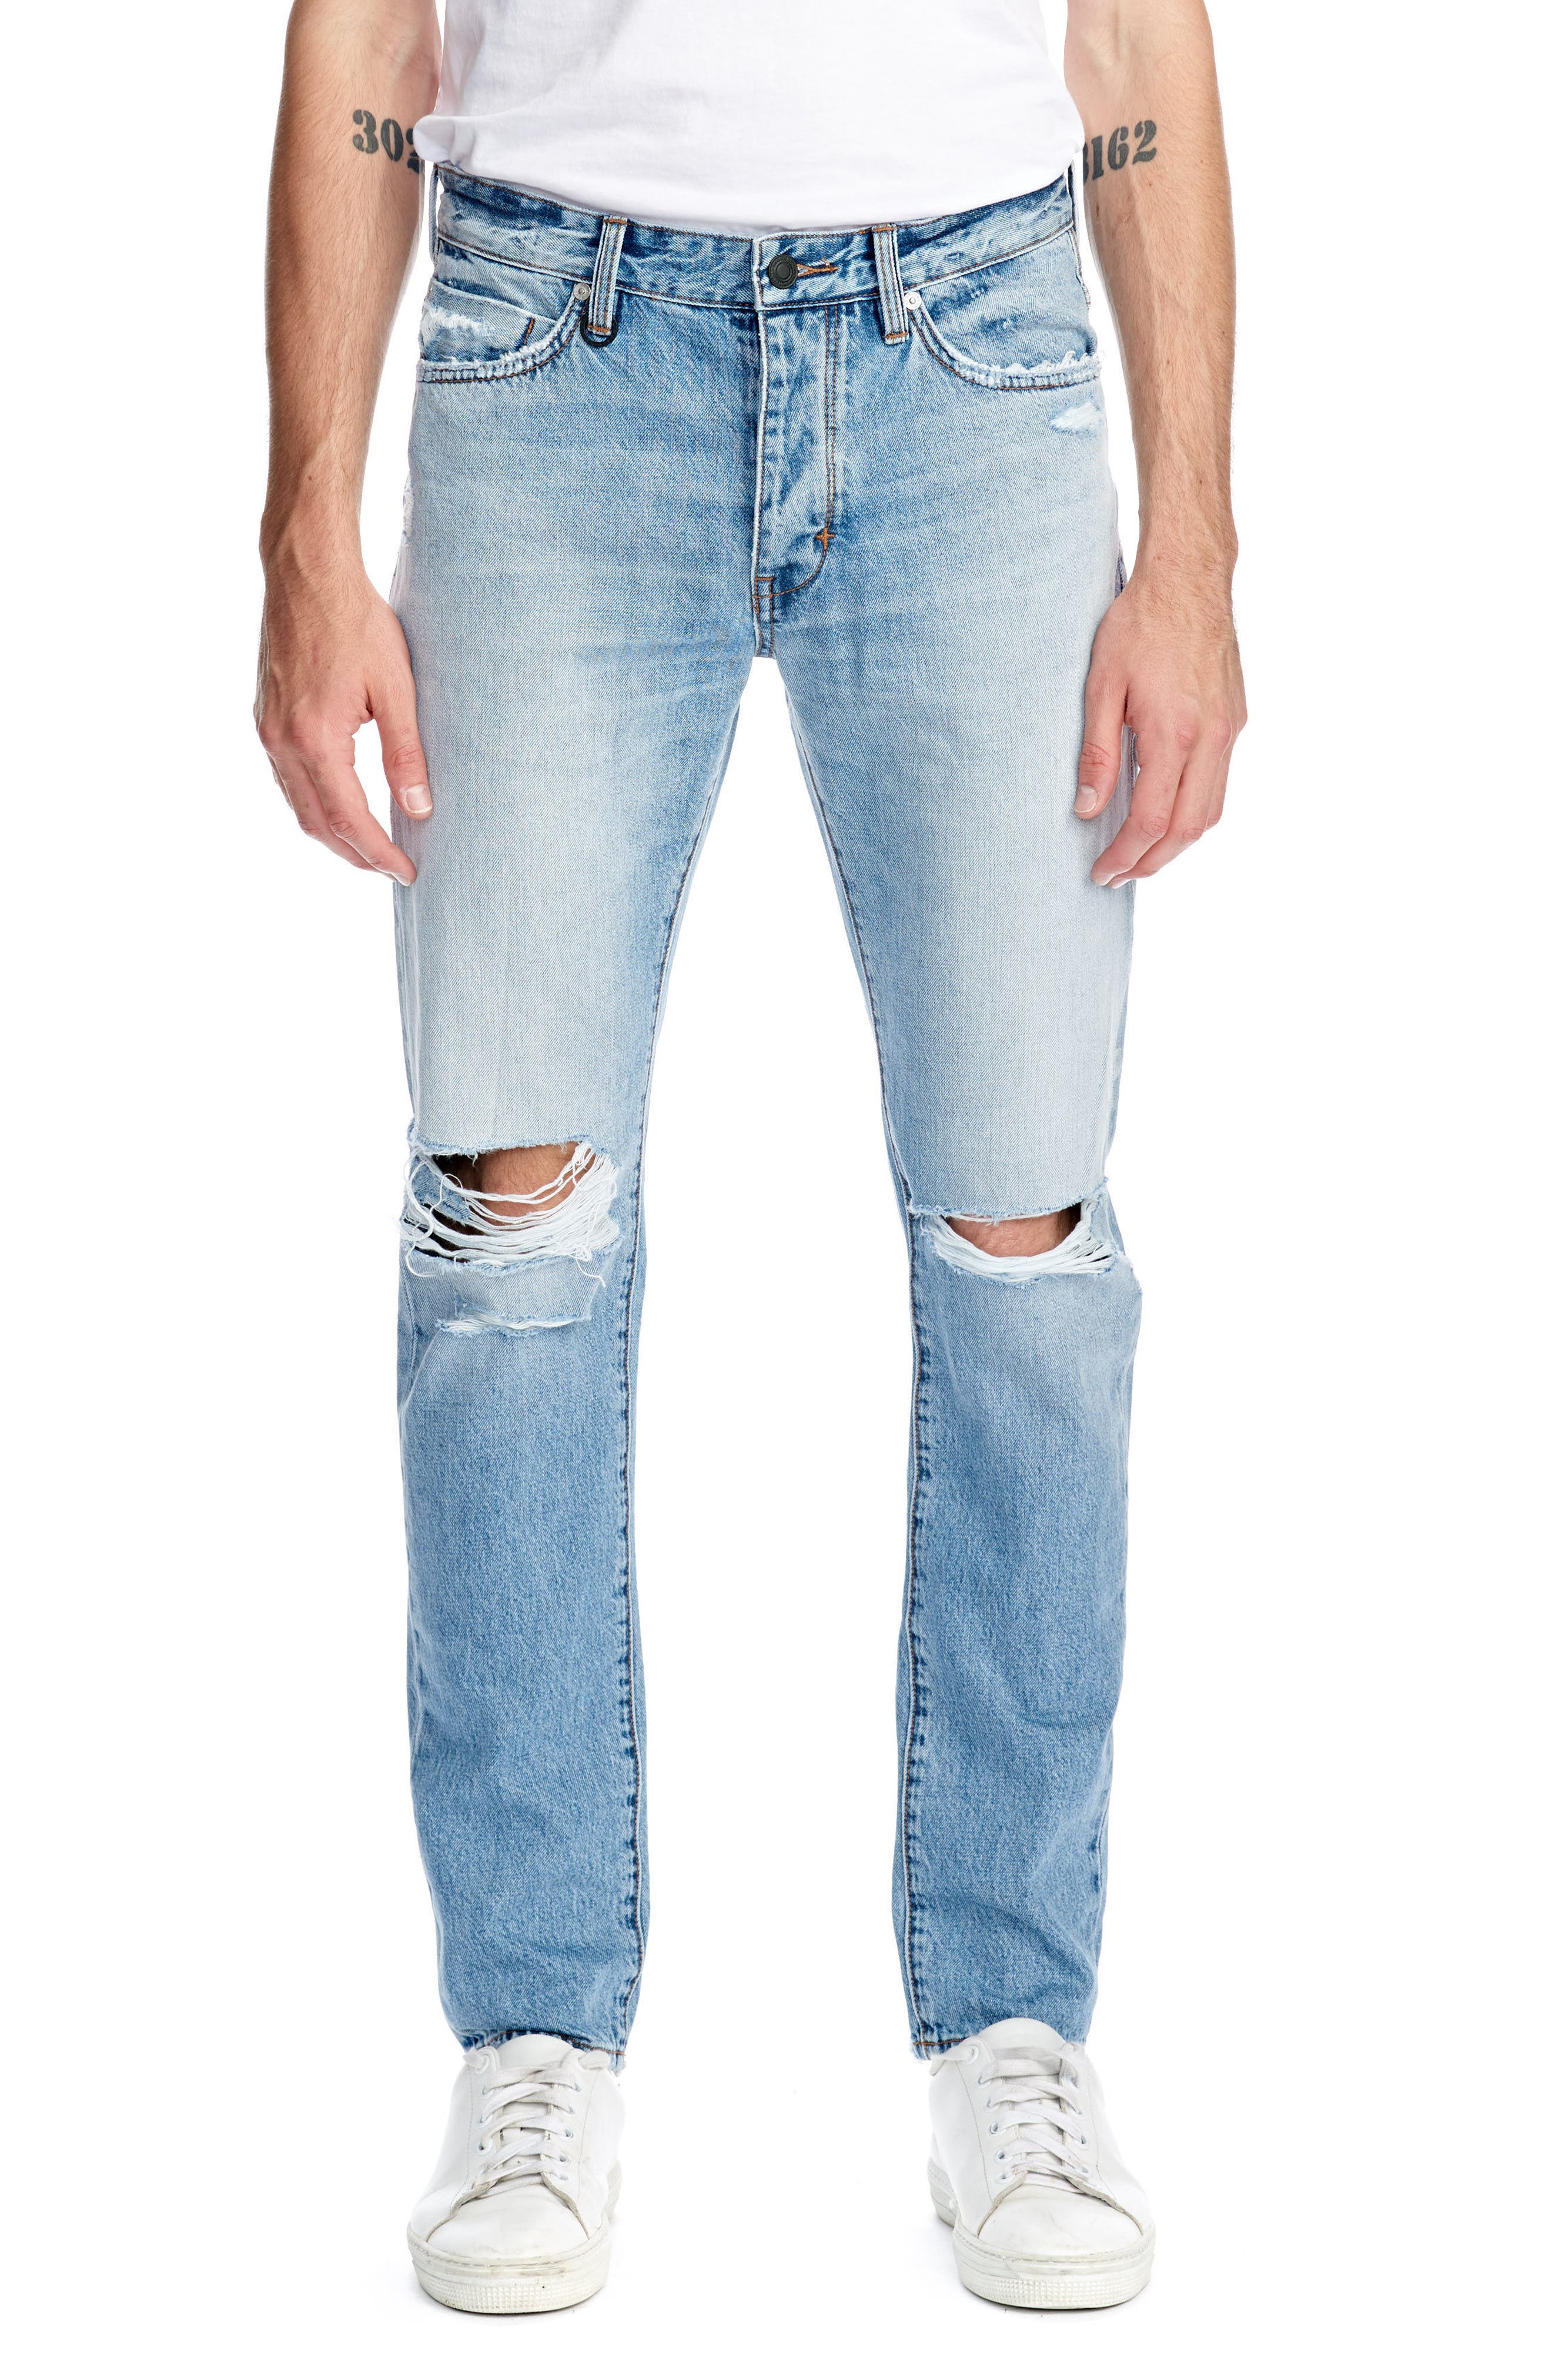 NEWU Lou Slim Fit Jeans,                         Main,                         color, Stockholm Broken